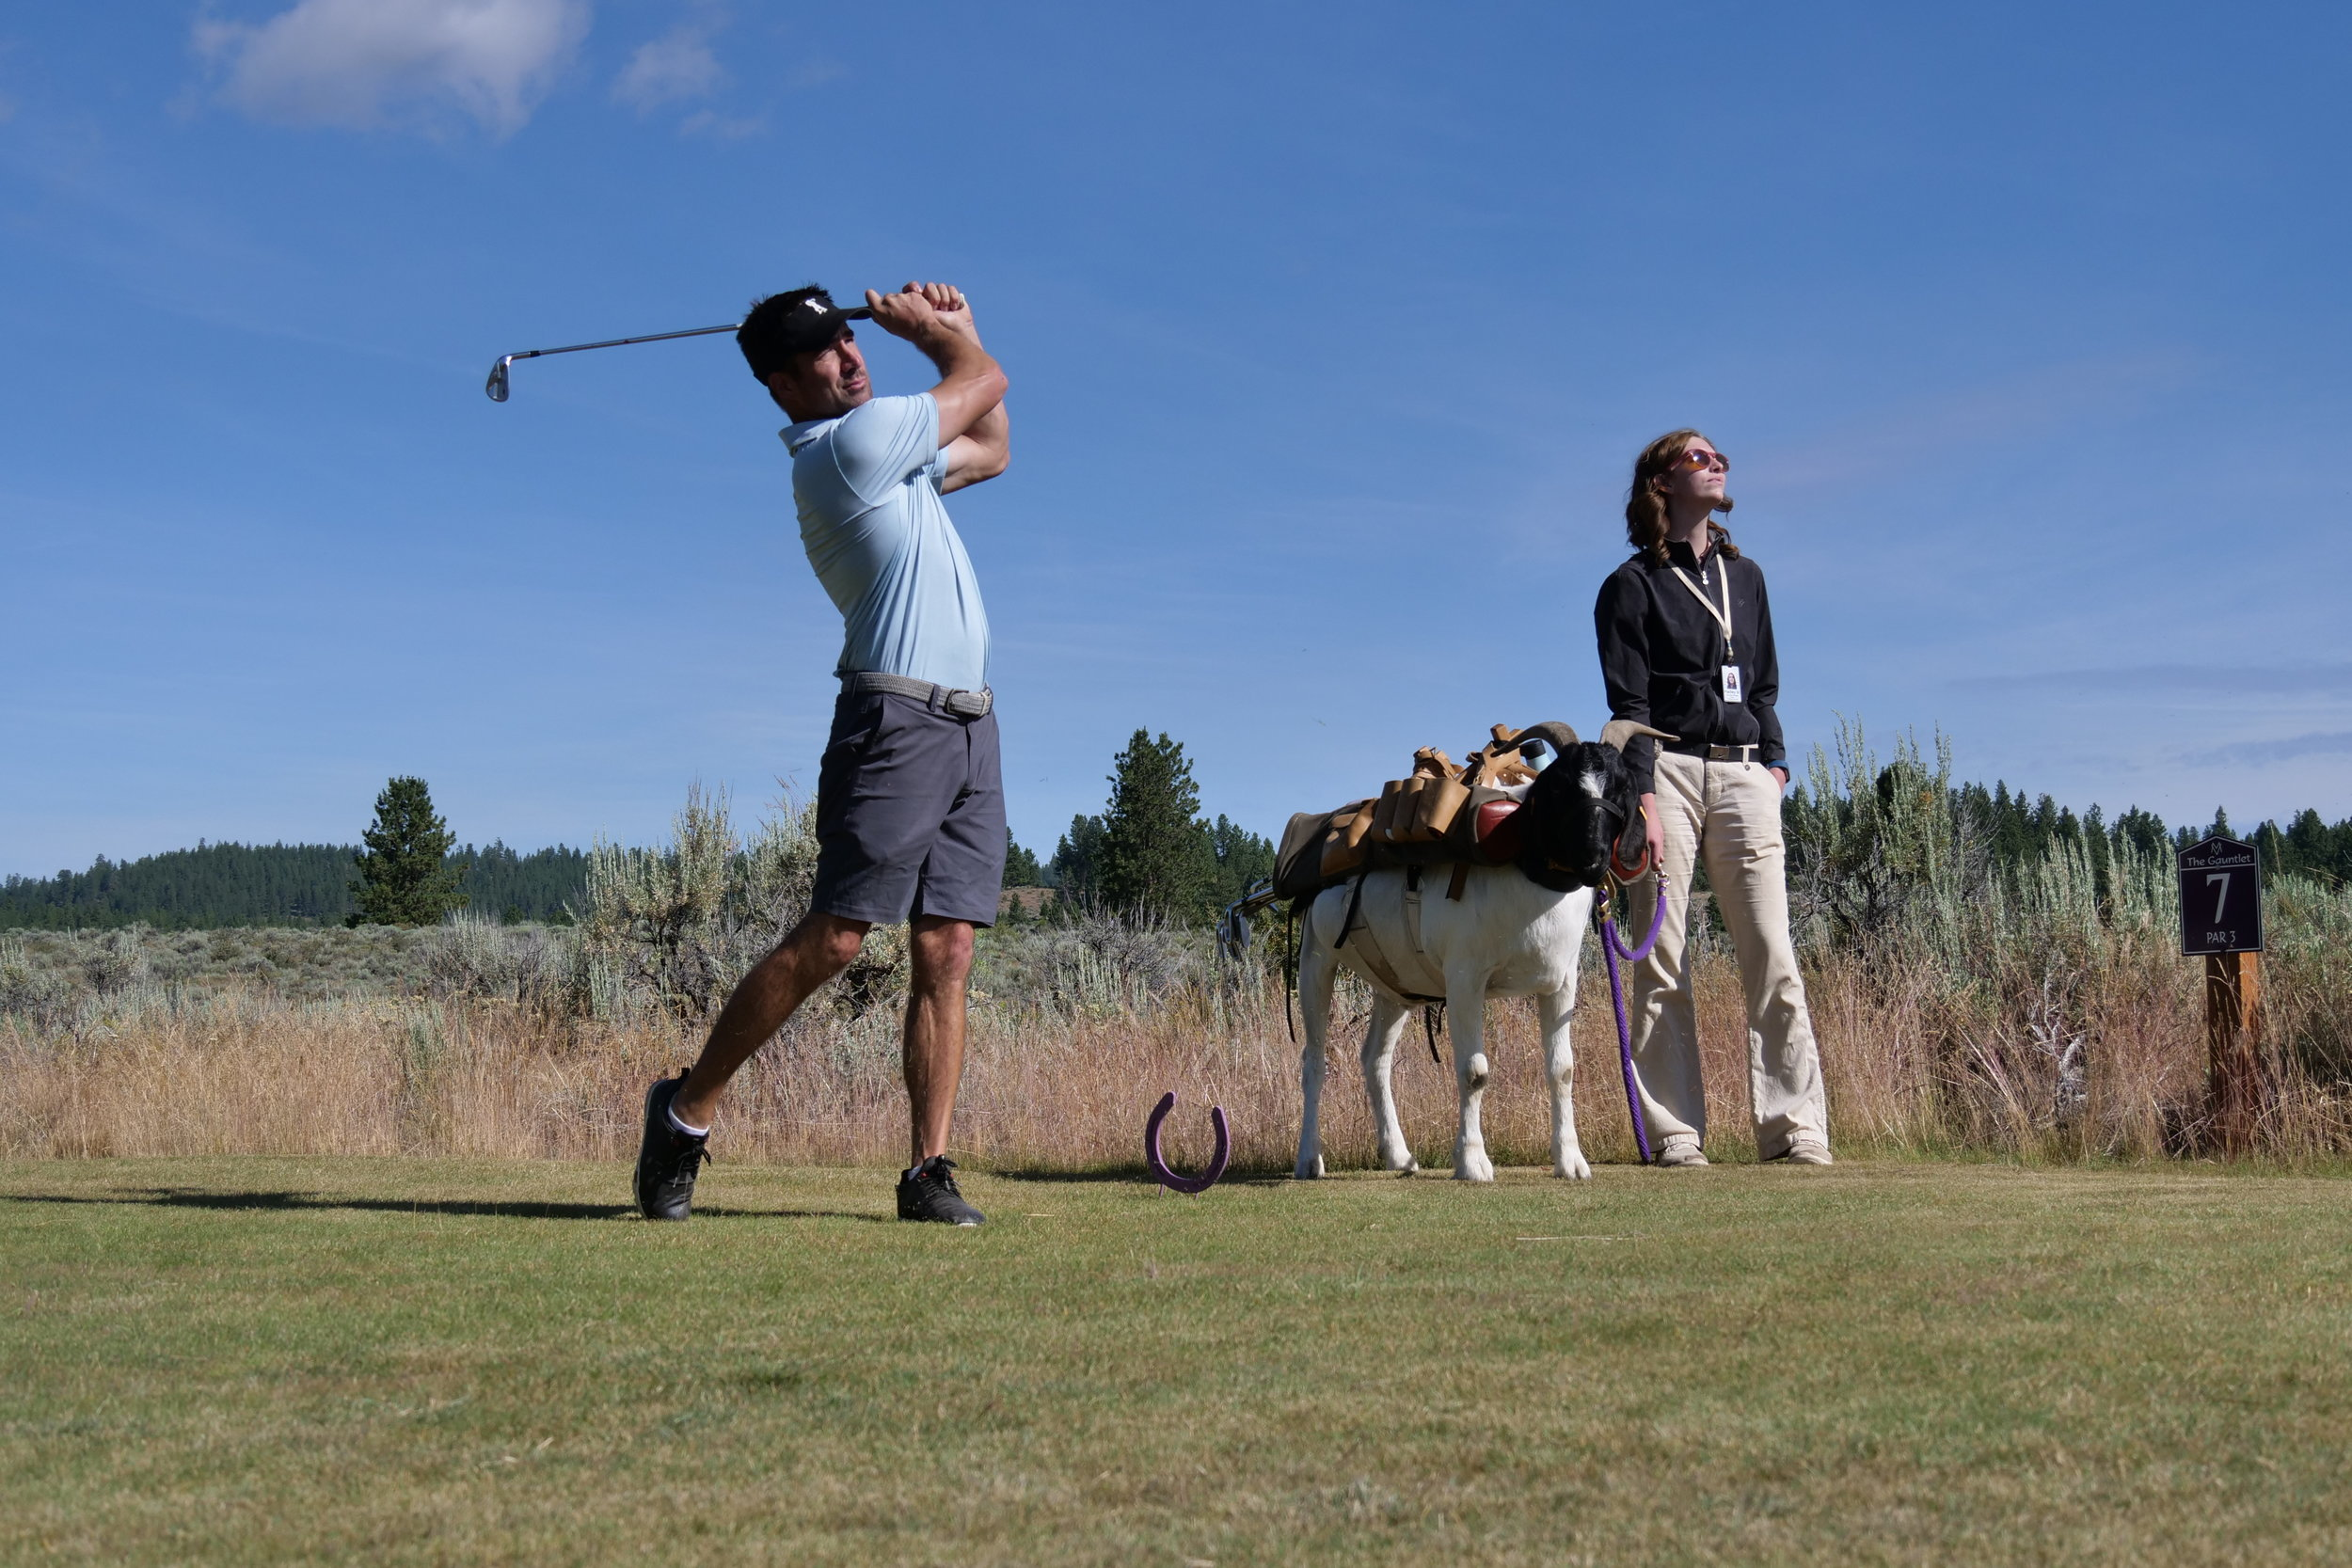 Bruce the goat caddy eyes and assesses the golf action.